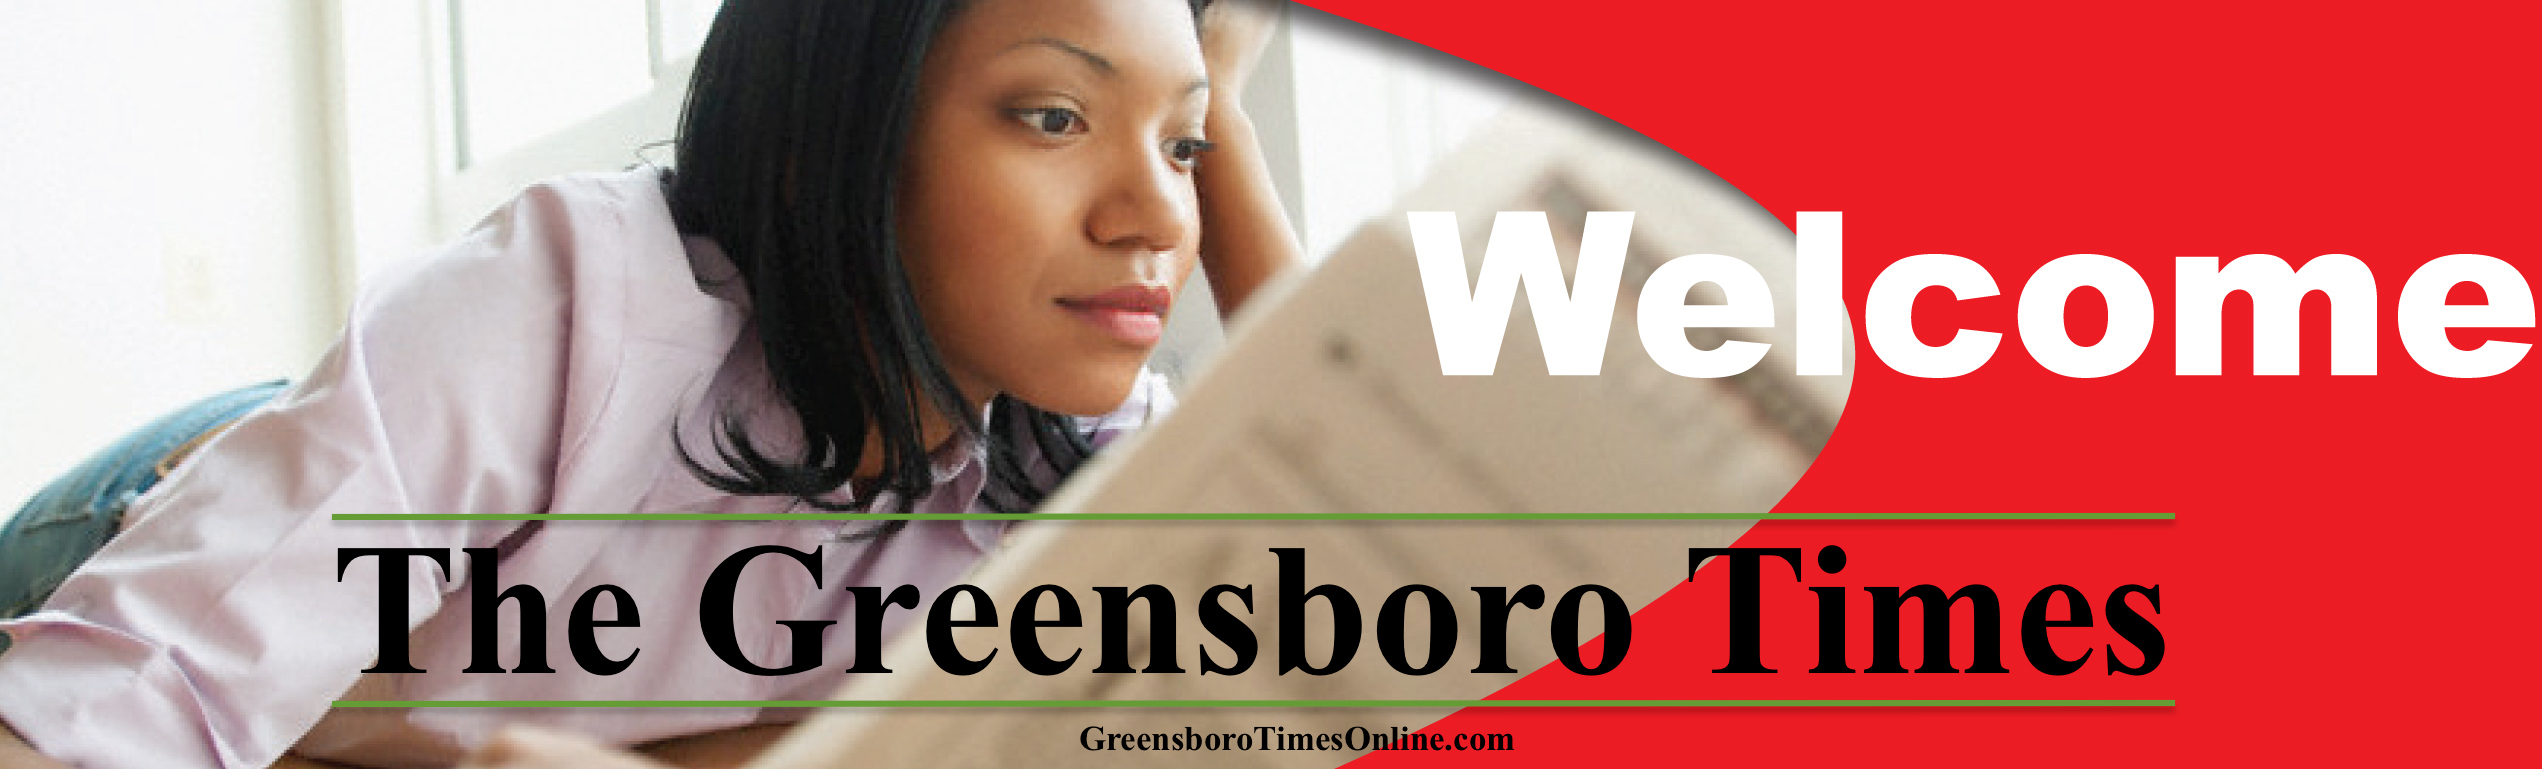 Greensboro Times The African American Voice Setting The Record